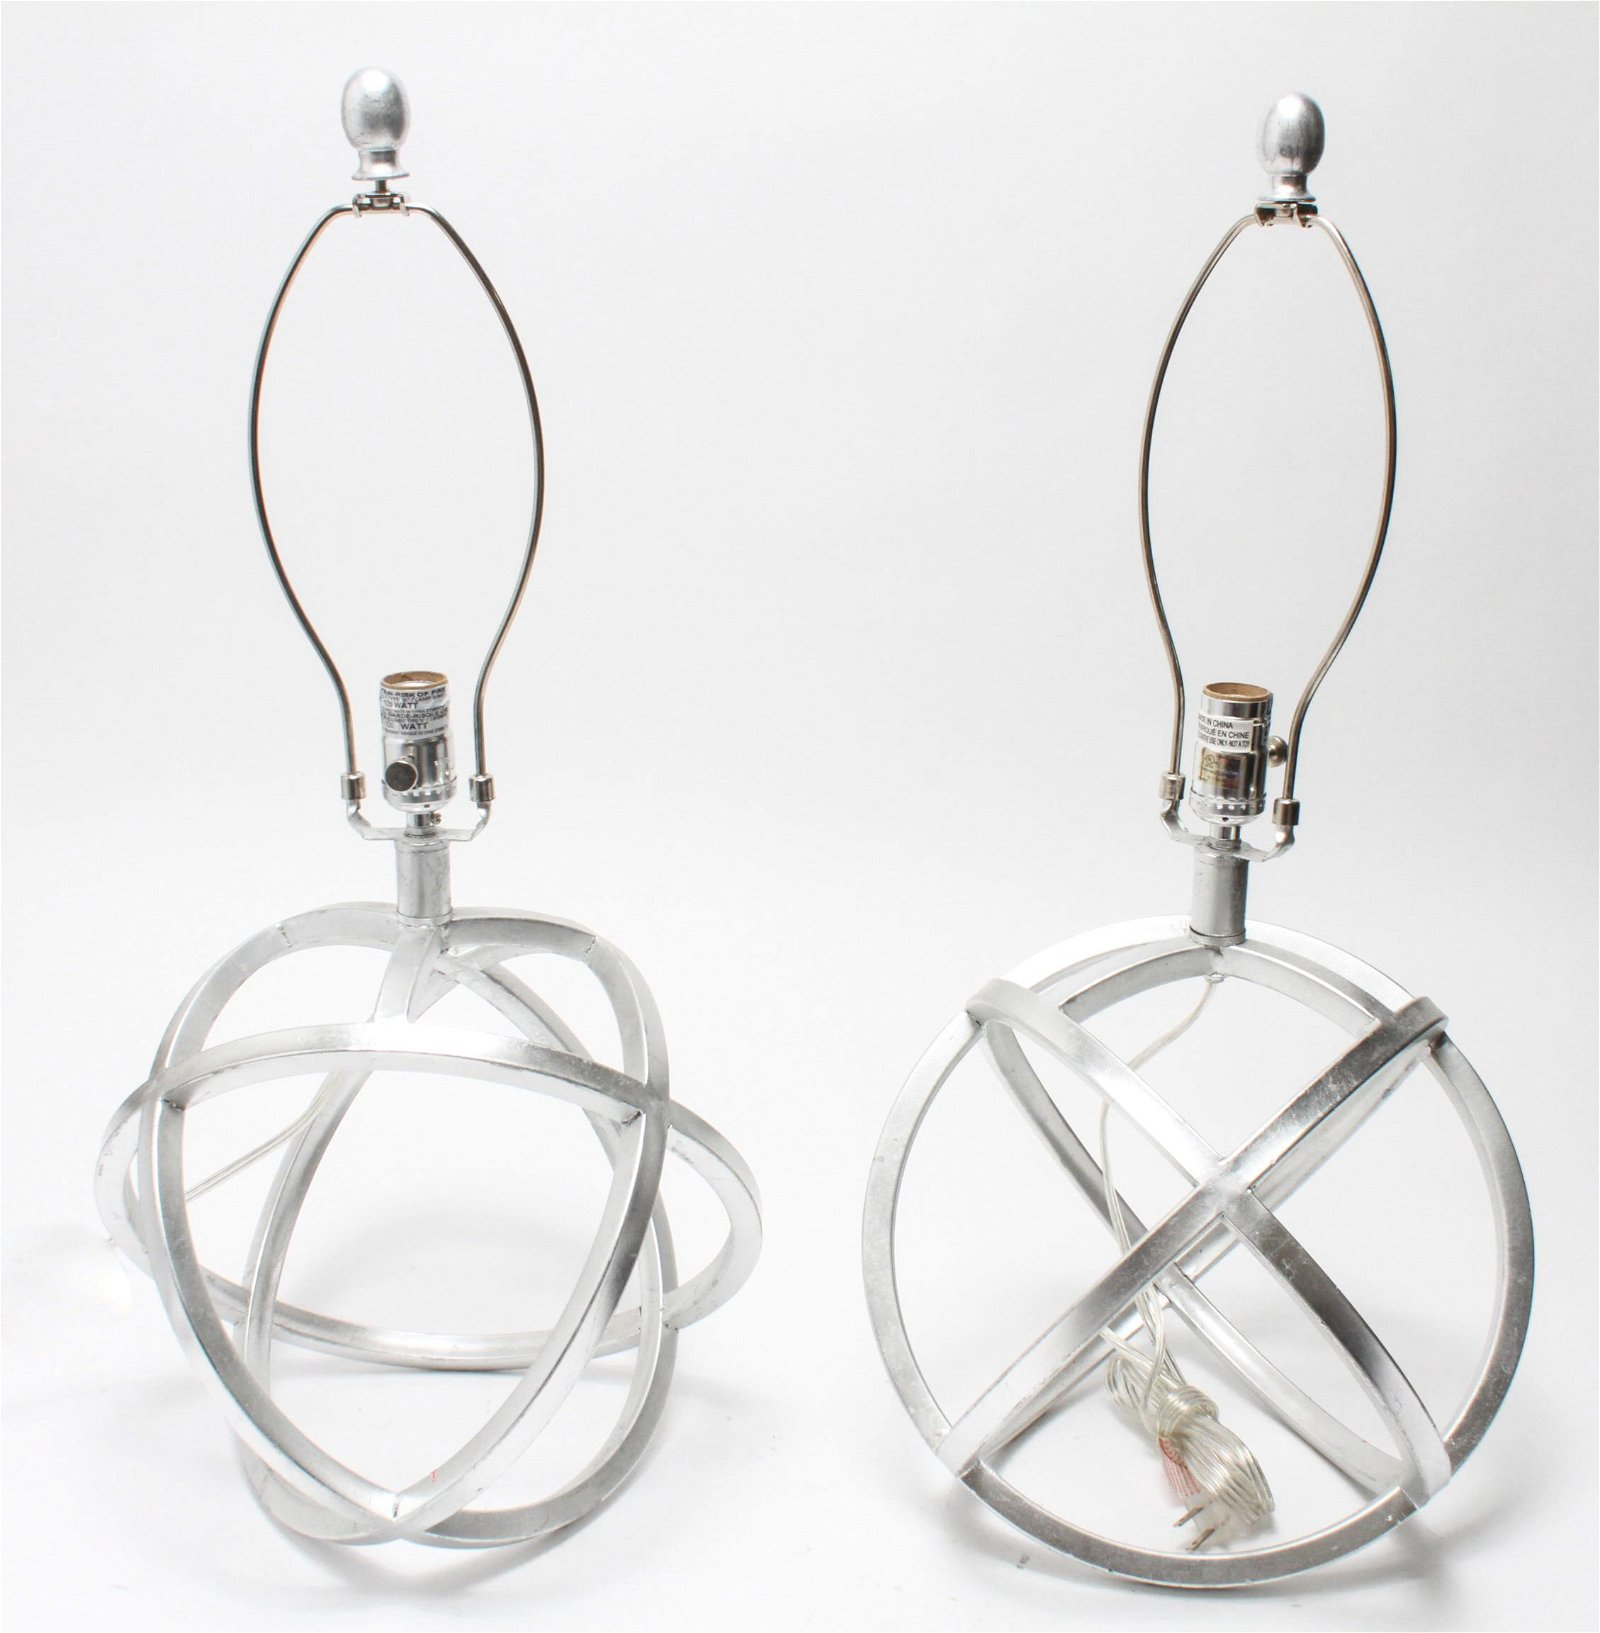 Modern Metal Orb Table Lamps, Pair